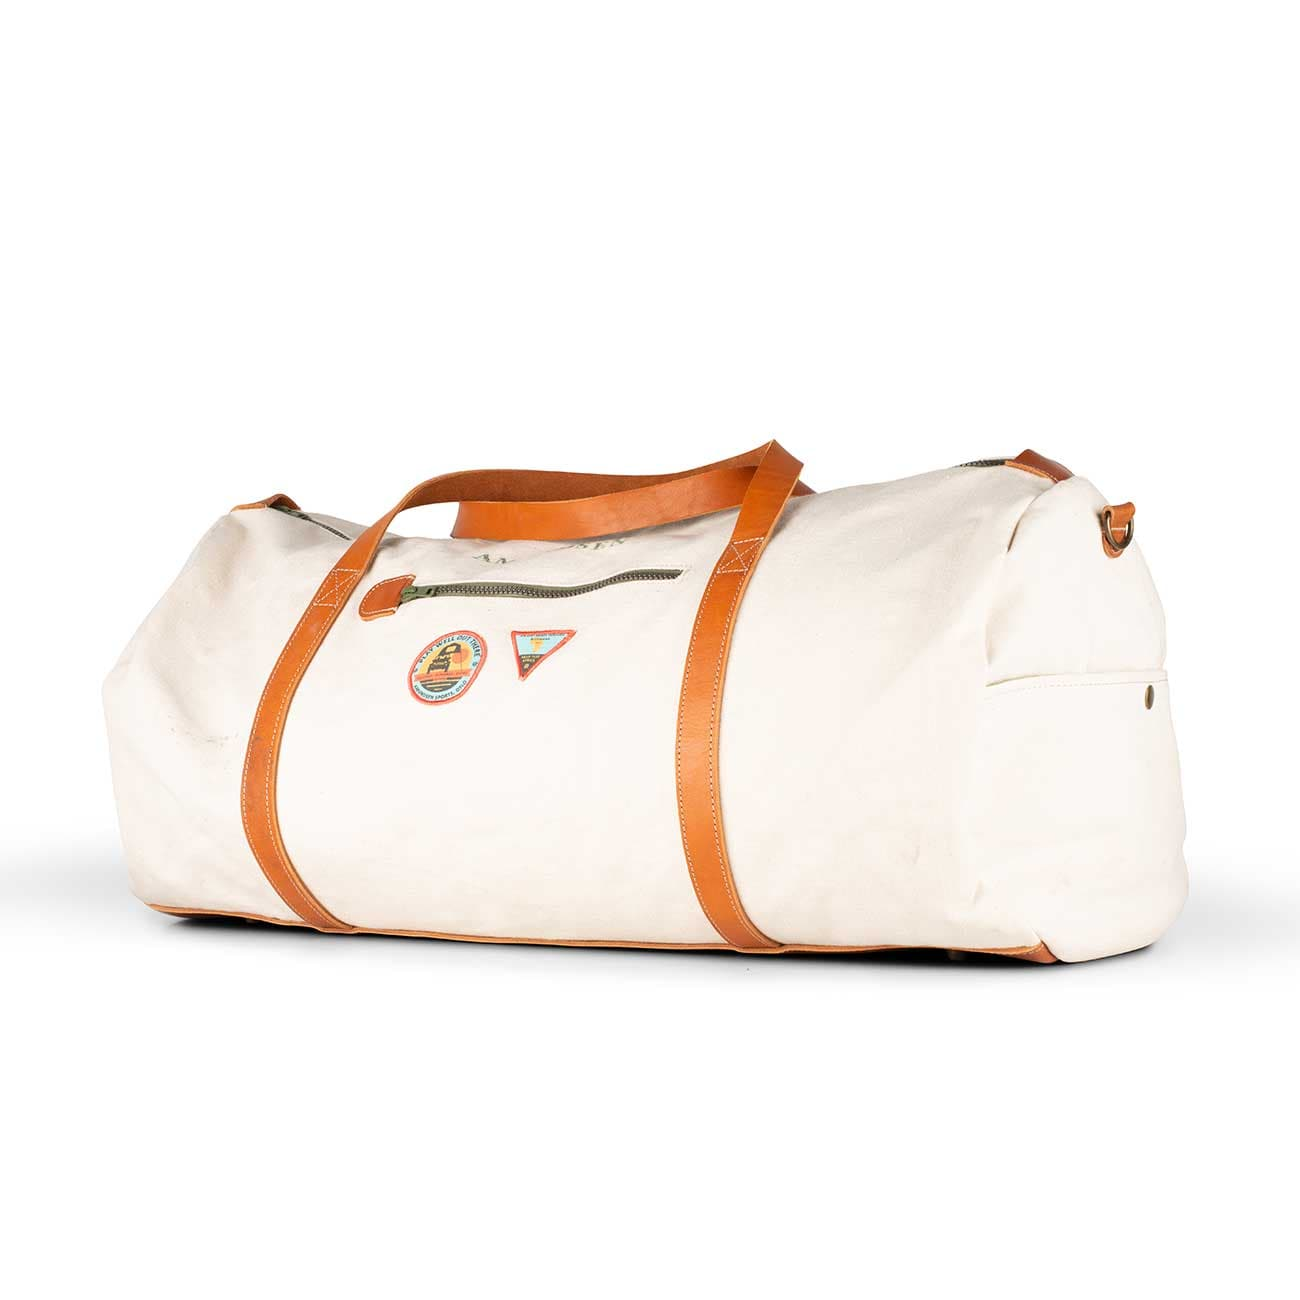 Amundsen Sports Okavanga Duffel Bag 65L